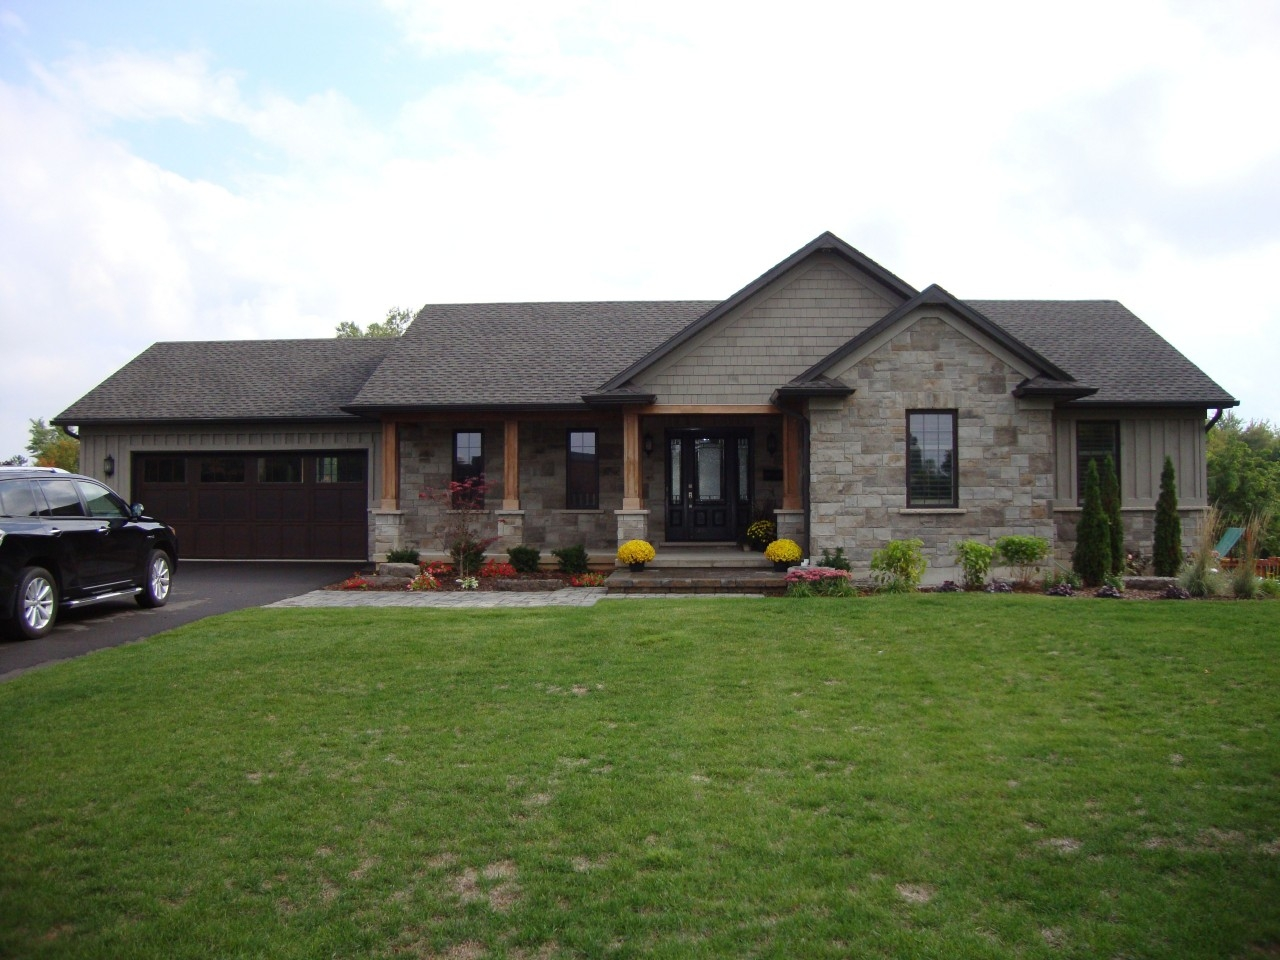 Canadian Bungalow House Plans Bungalow Home Plans And